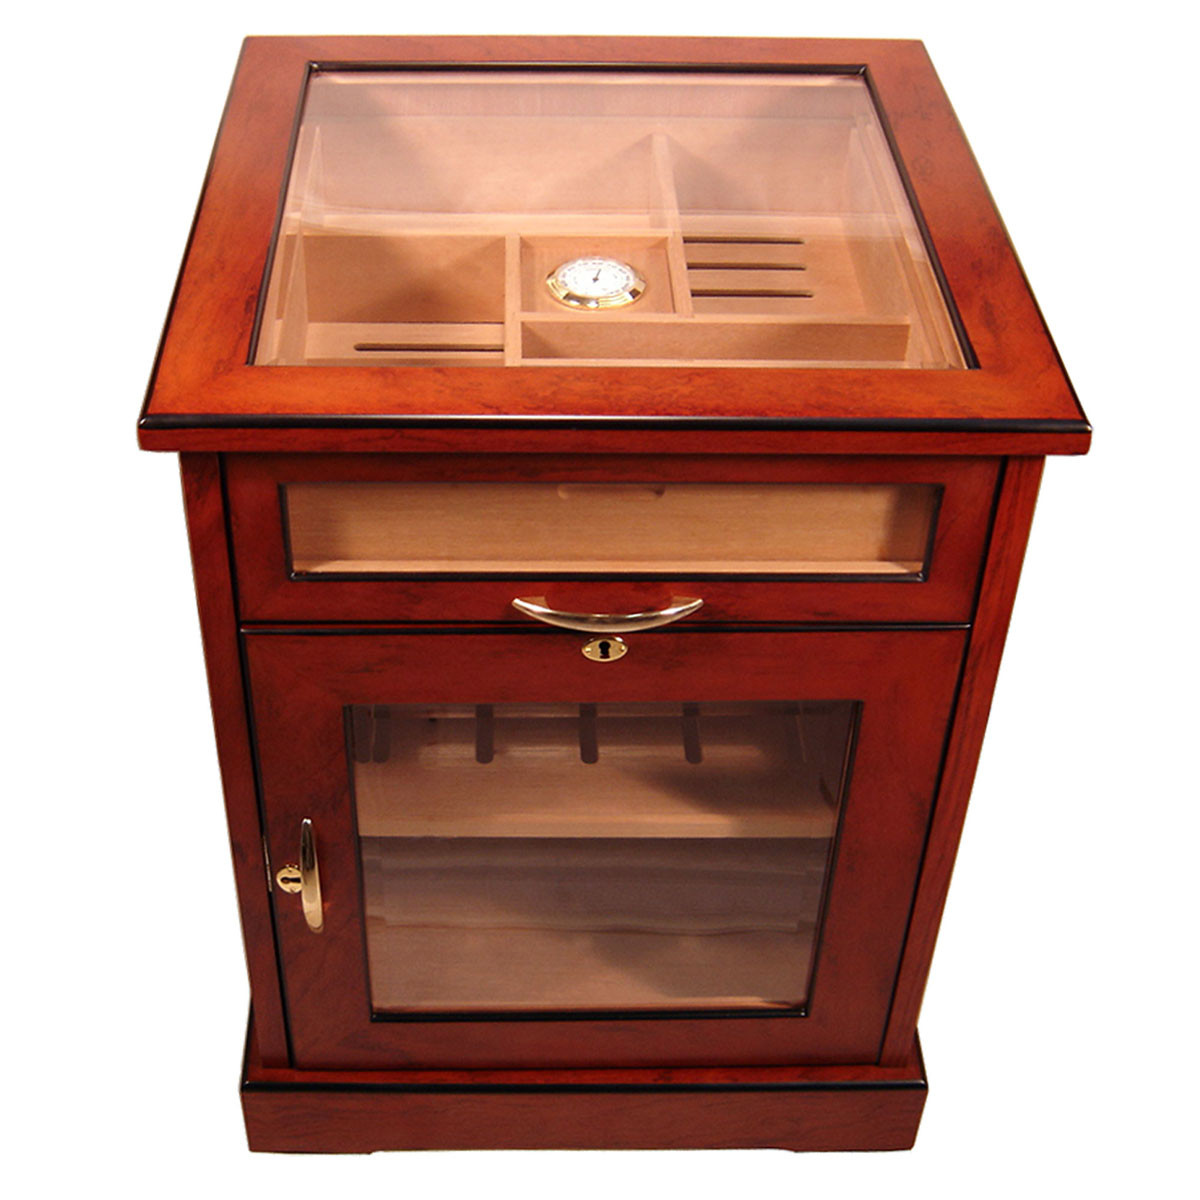 id decorative by f humidor on for charles at l cigar stand guillaume objects cabinet furniture boxes sale diehl